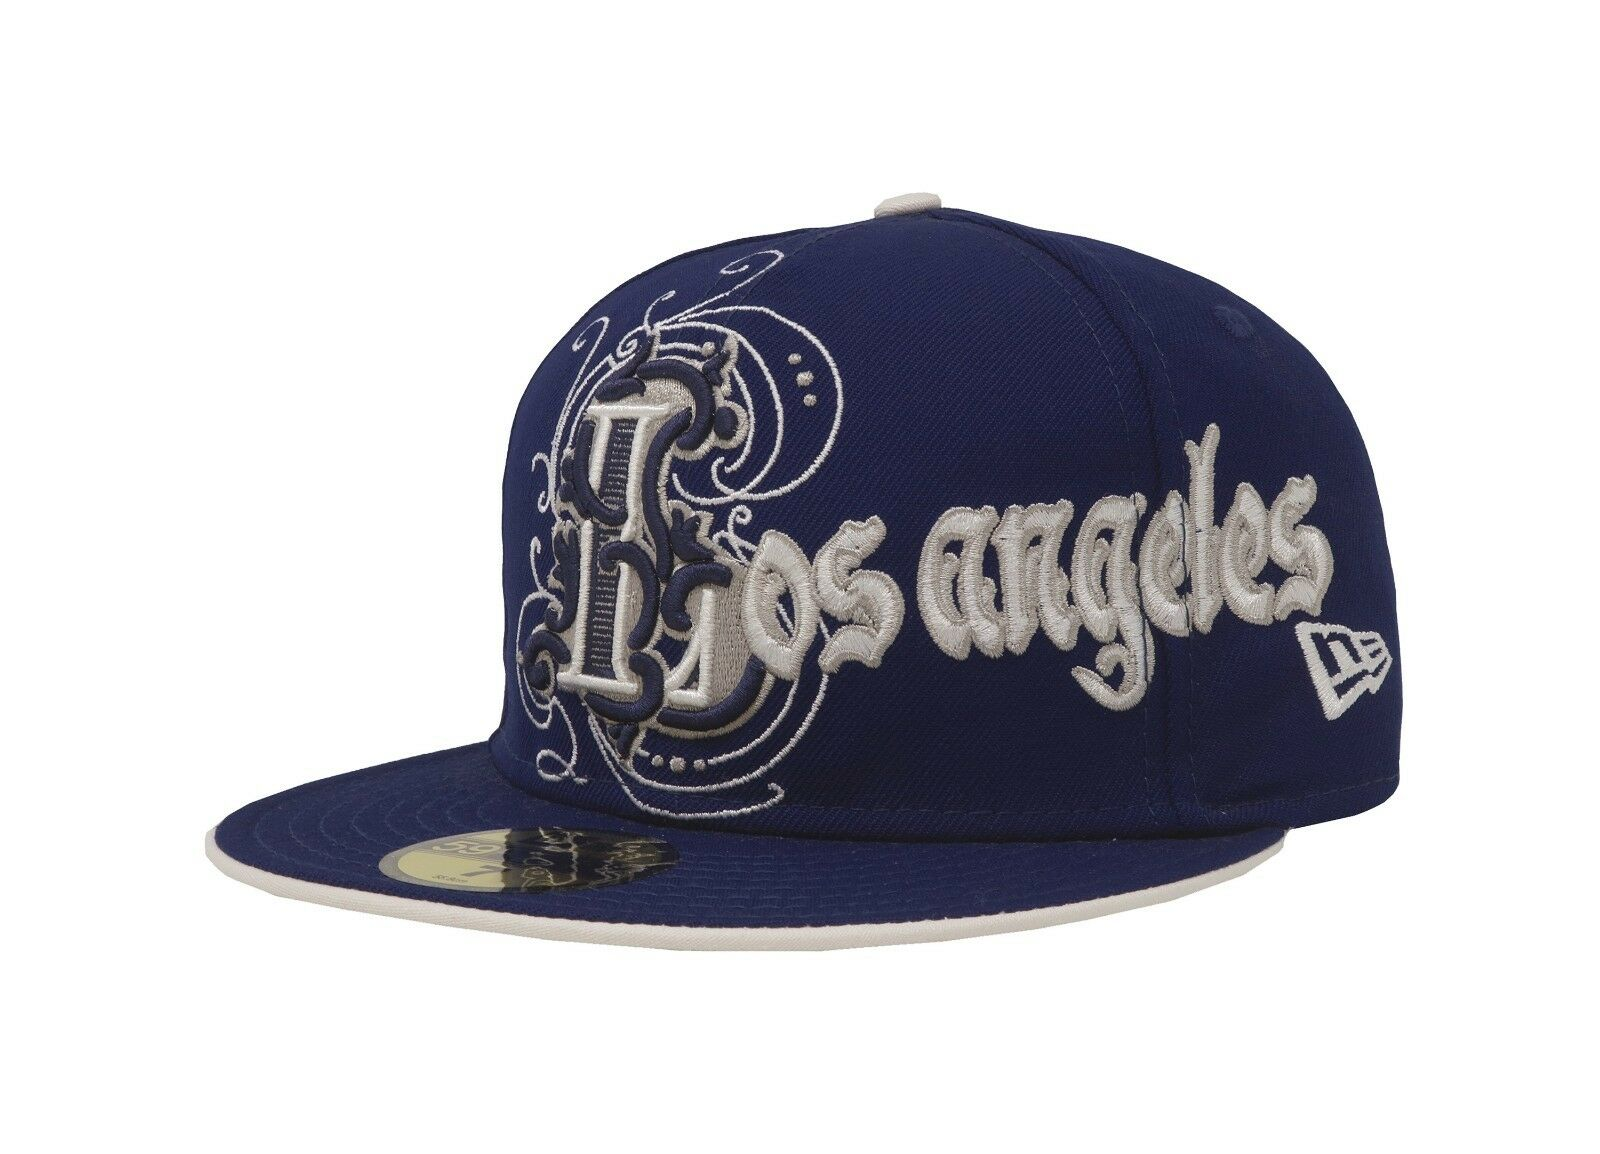 quality design 55a8c b6e35 ... coupon code new era 59fifty cap mlb los angeles dodgers celti hat blue  mens fitted 5950